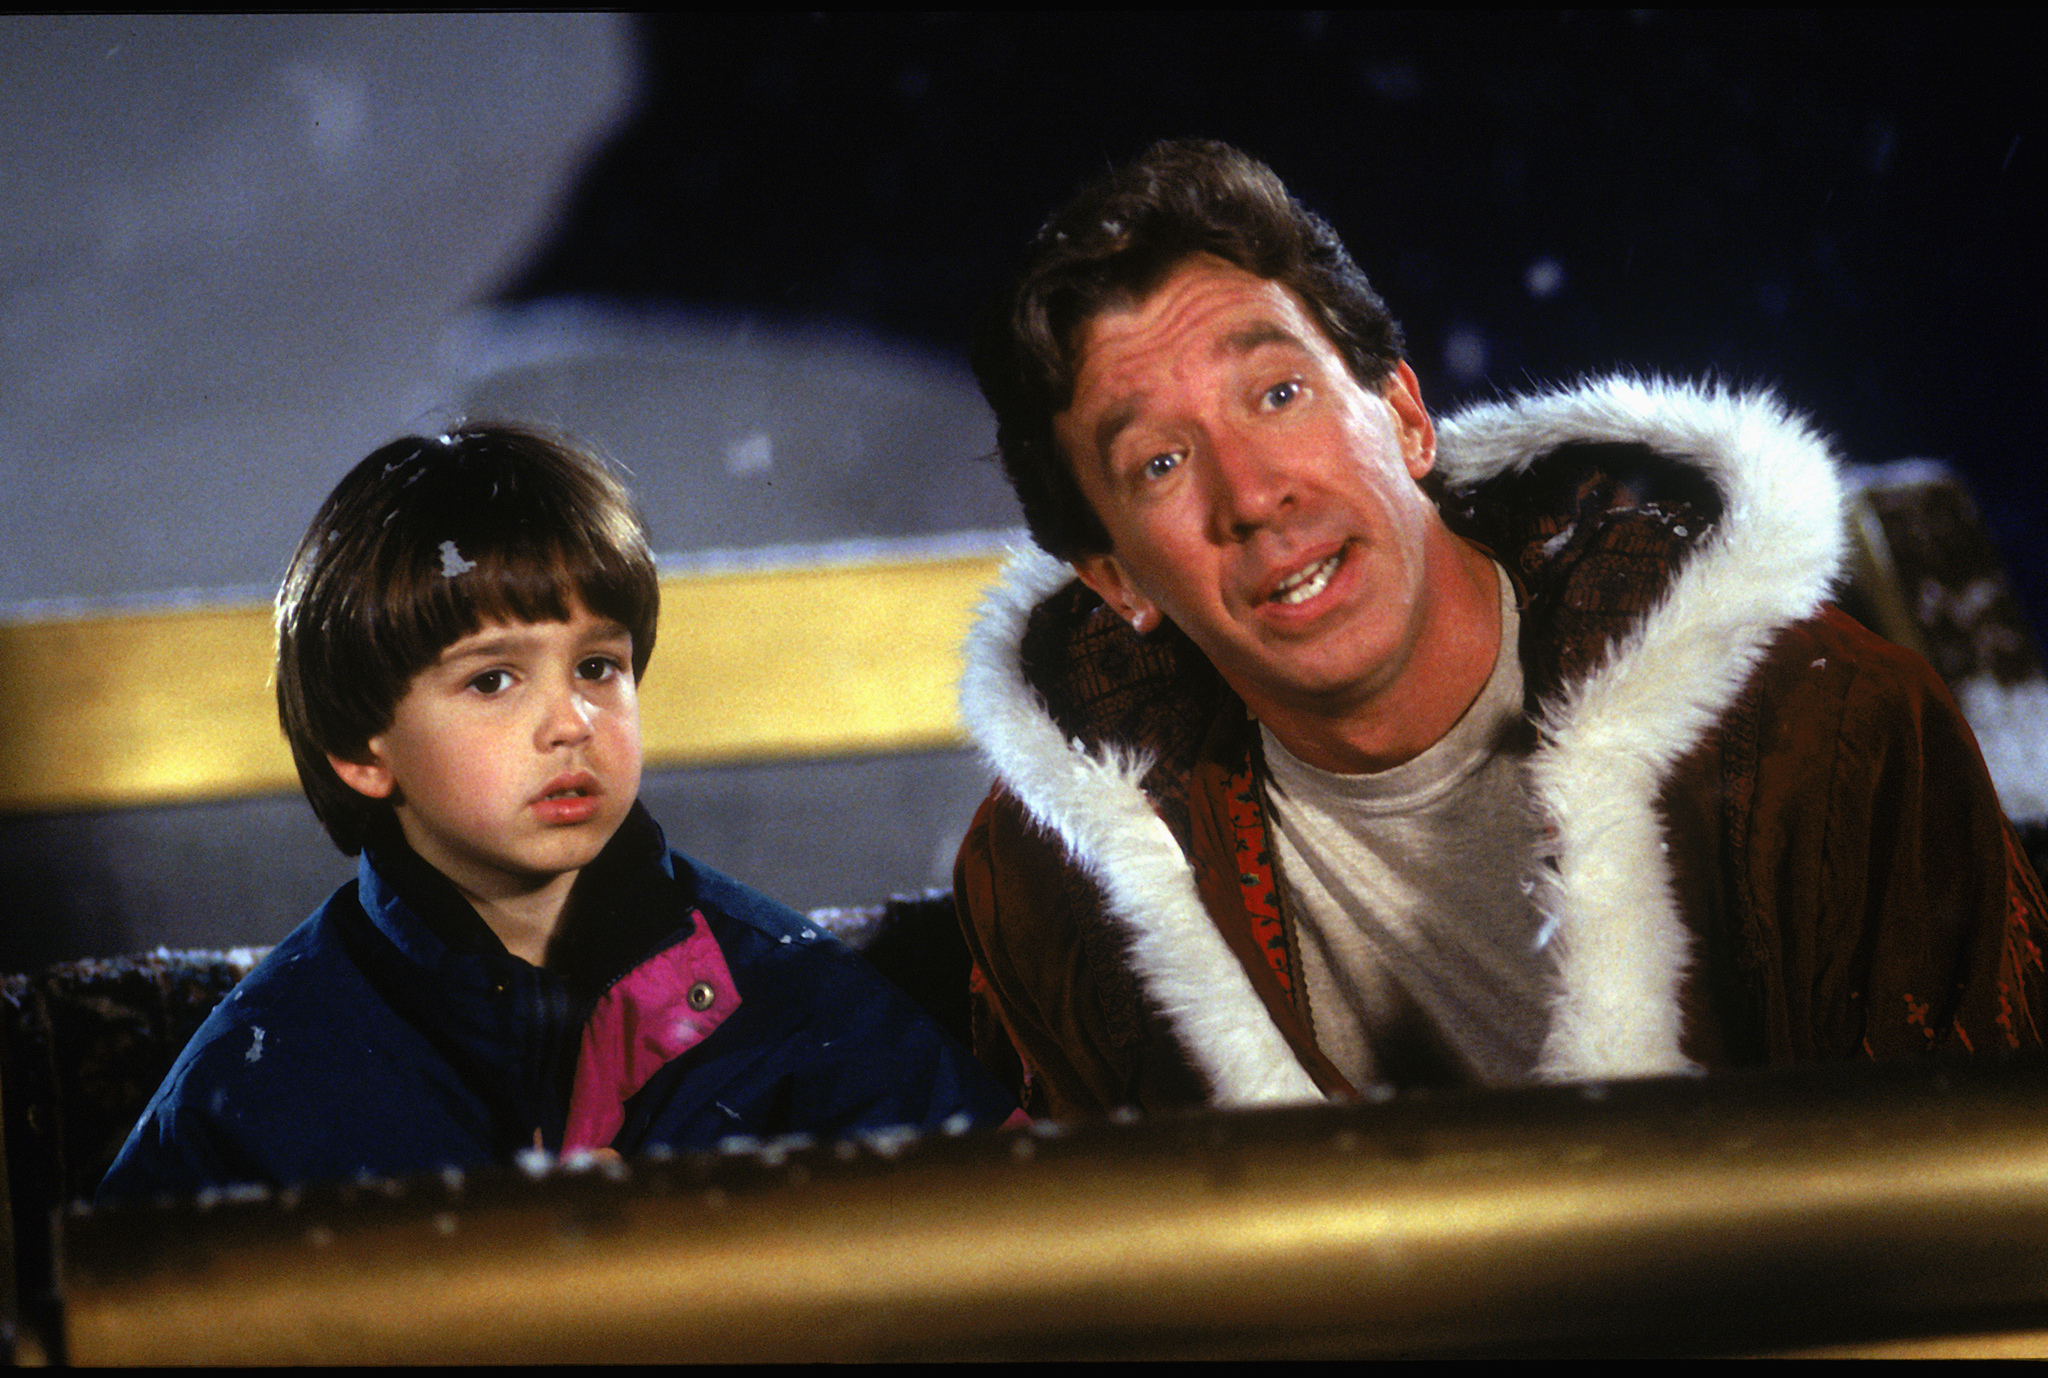 Tim Allen and Eric Lloyd in The Santa Clause (1994)